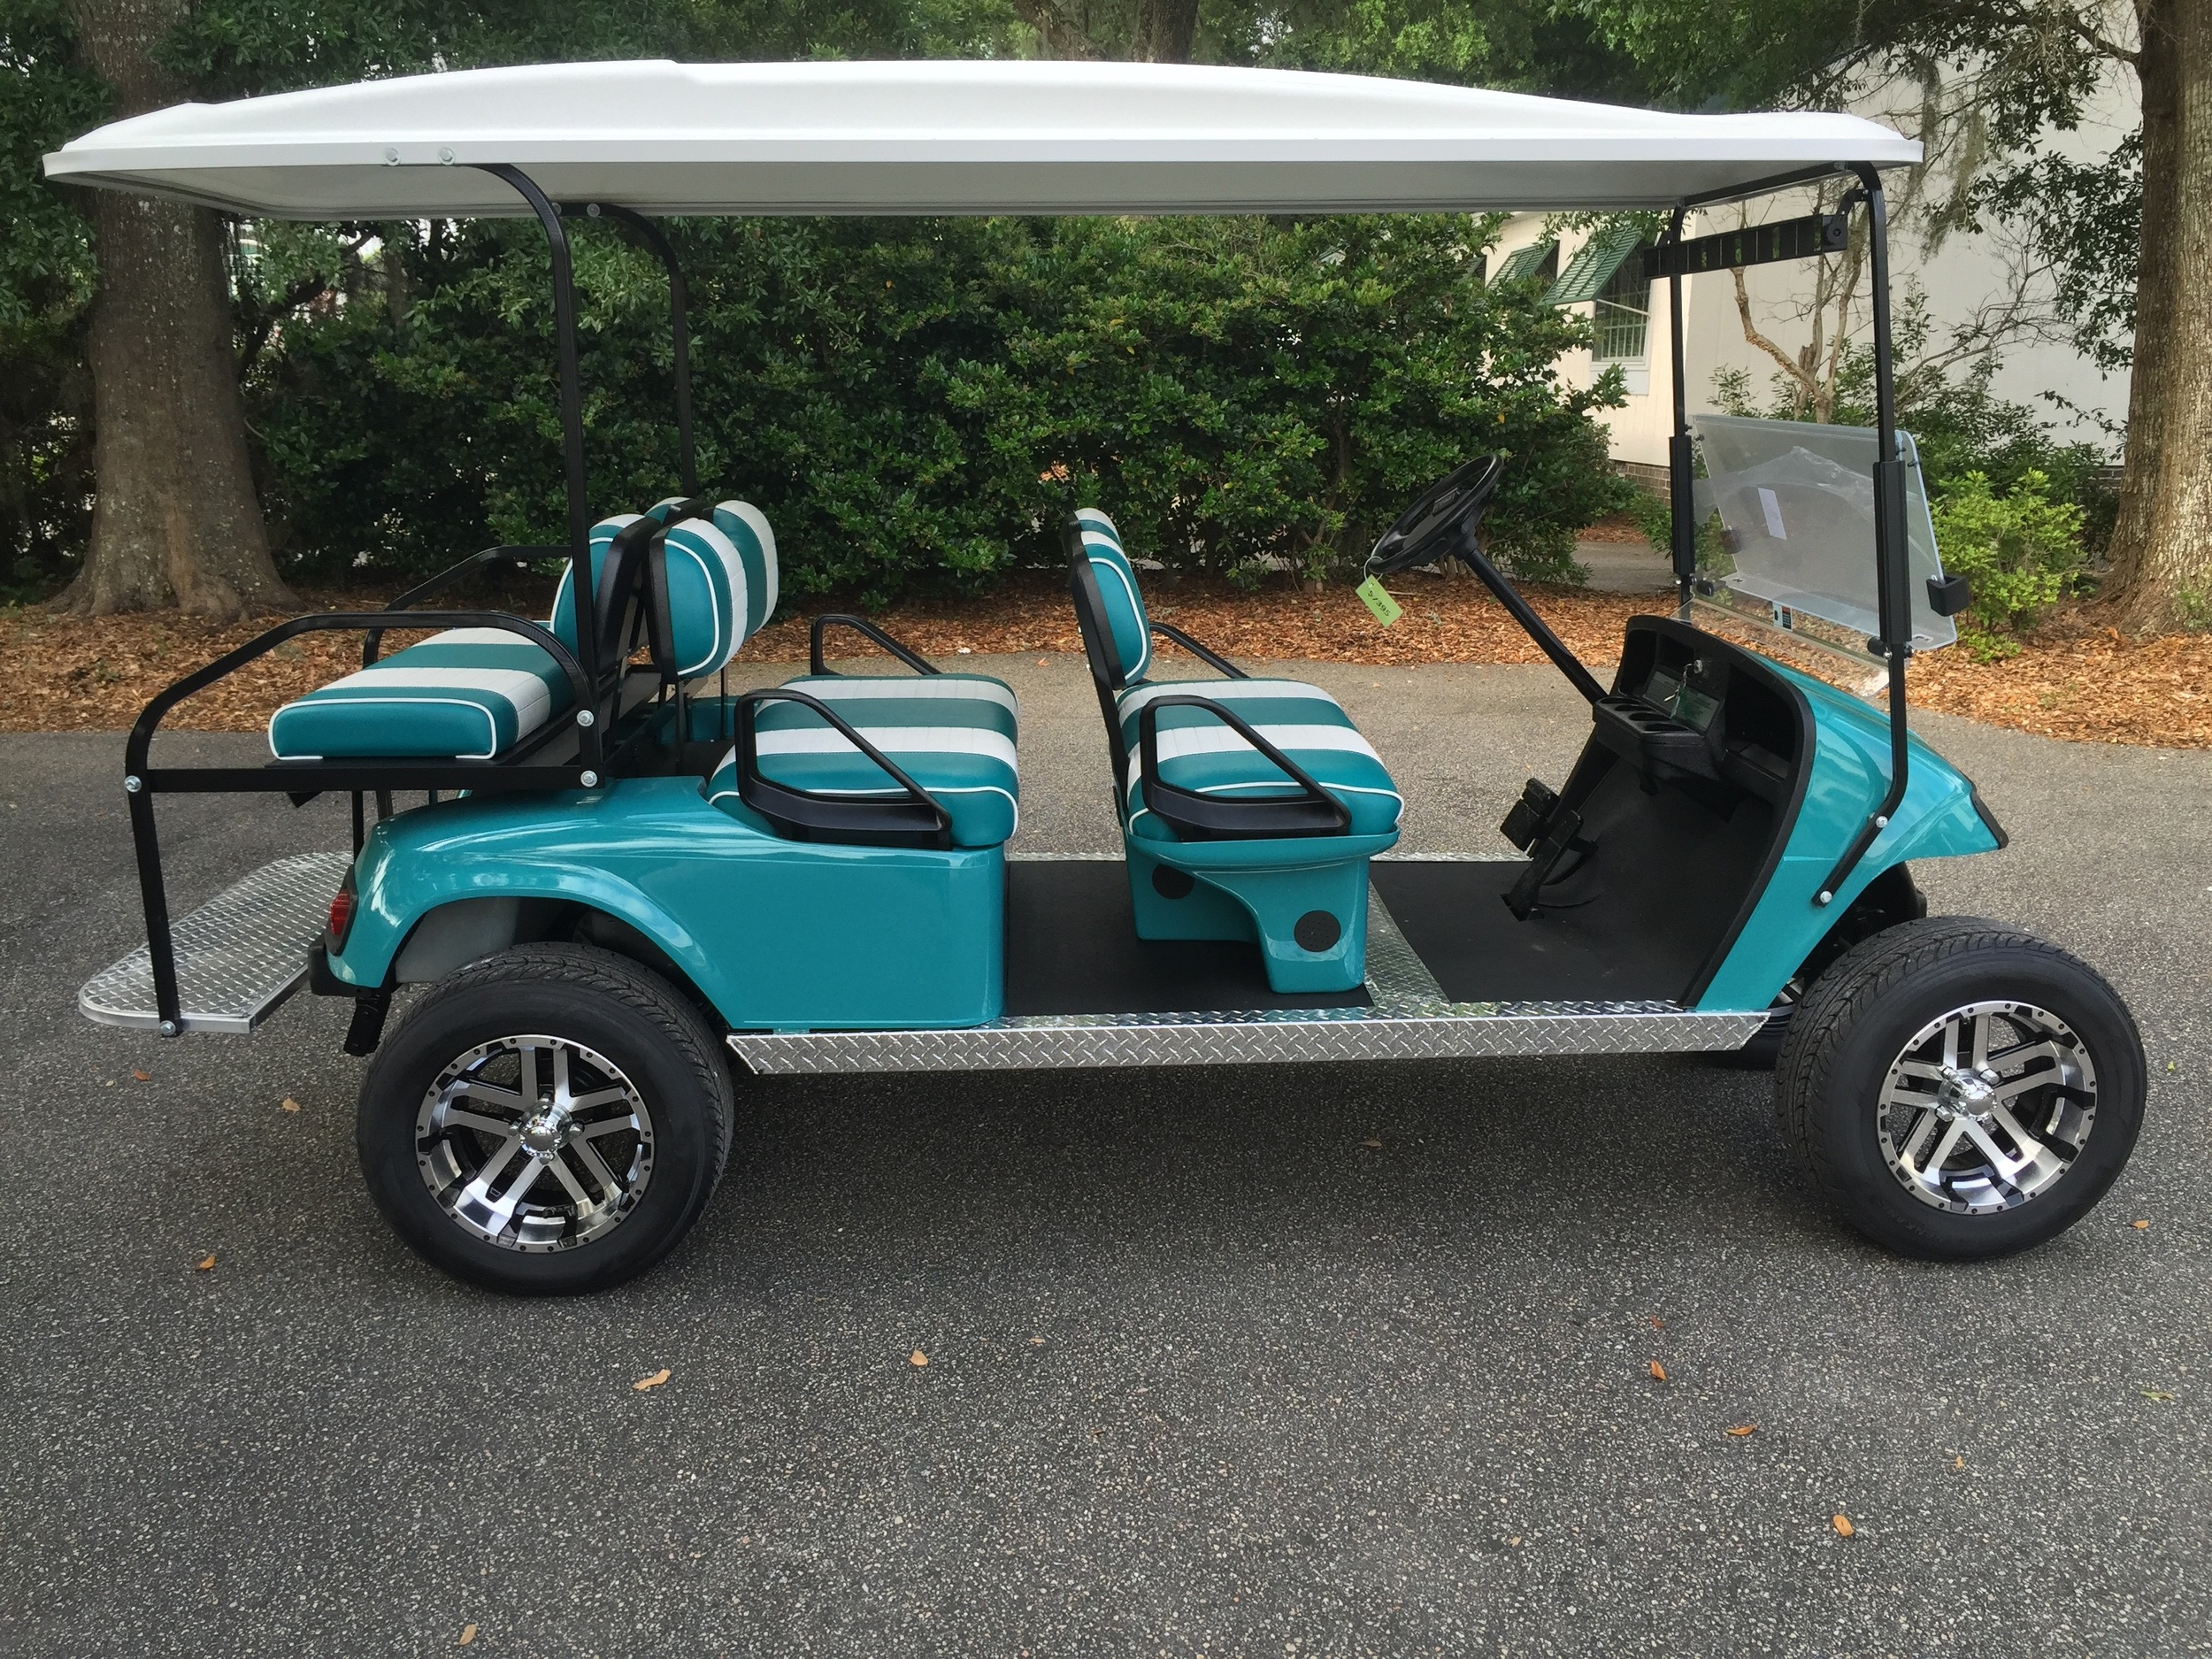 Teal EZGO Lifted Trolley  Teal/white seats, white top, new 2018 (6-8vt) batteries, high speed code, LED lights, Backlash (23x10x14) tires, state of charge meter, mirror, and flip windshield